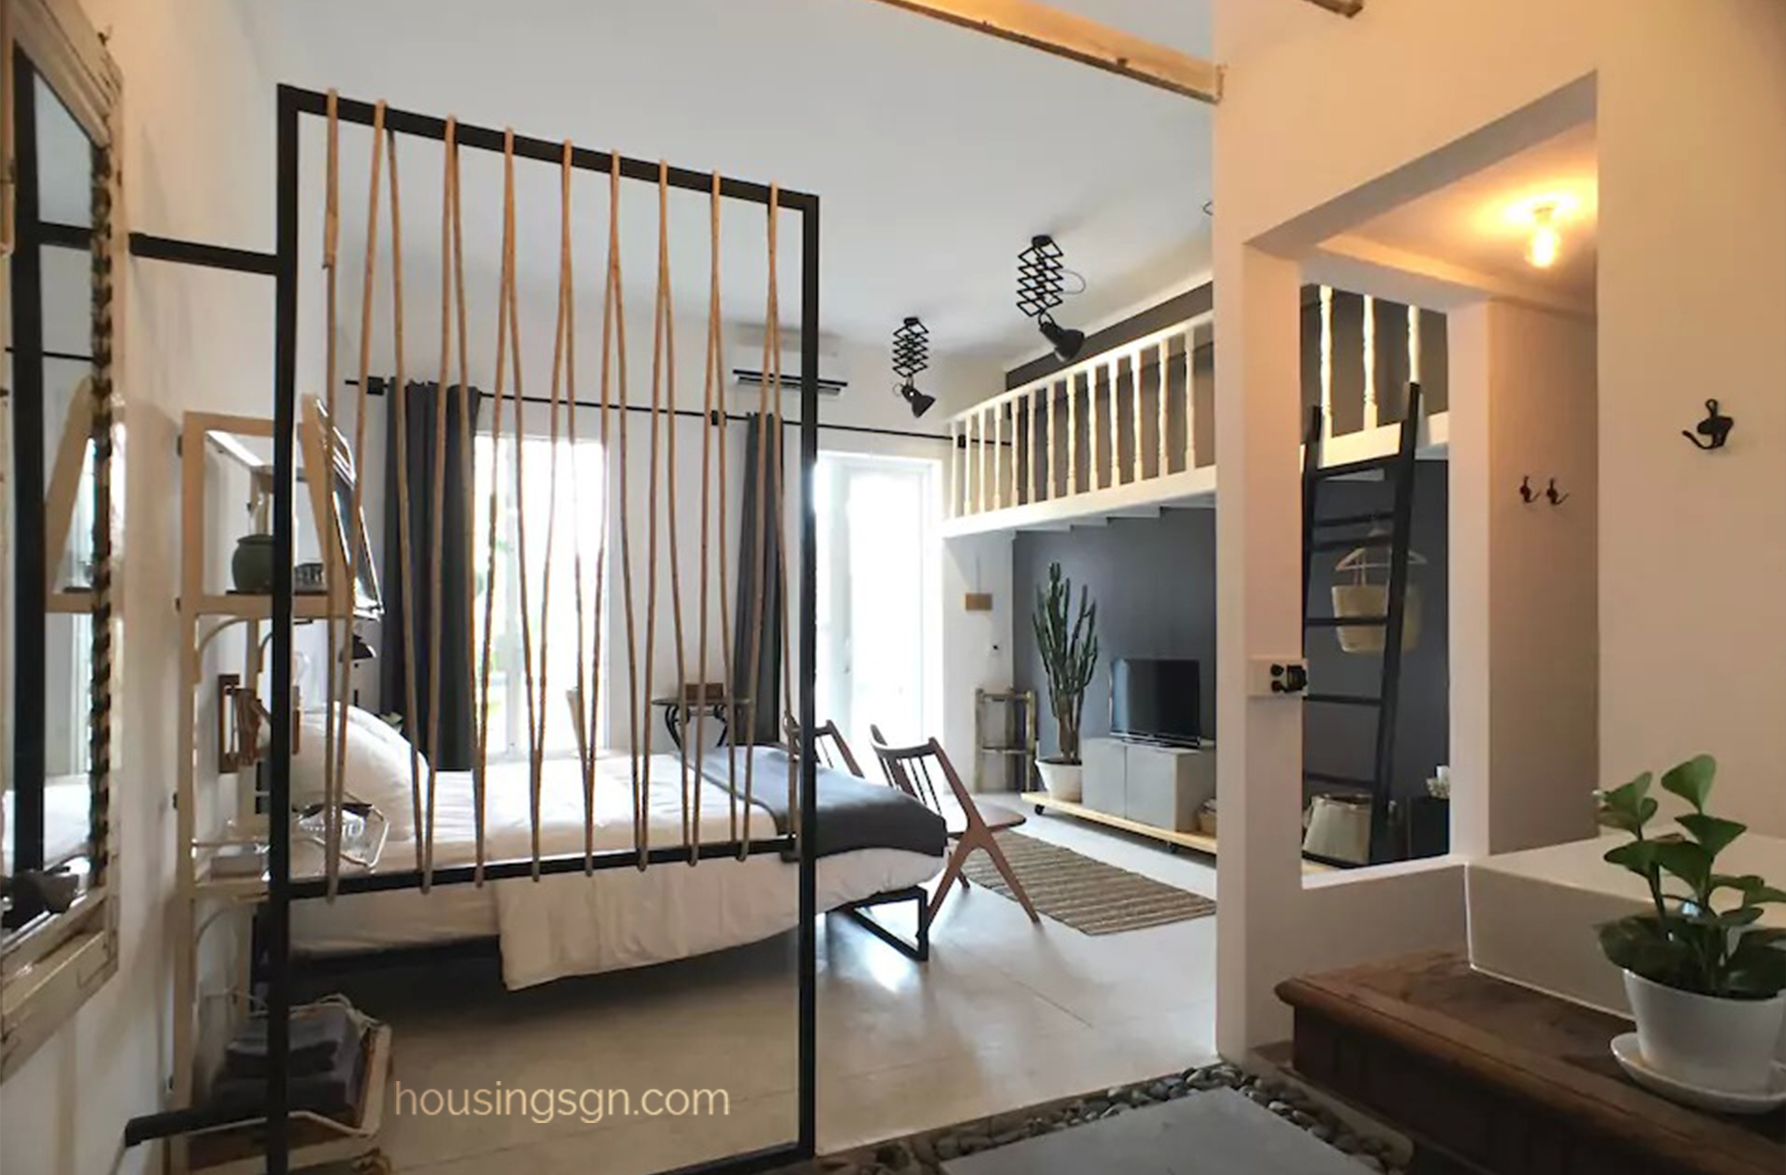 In One Of The Greatest Location Comfortable Bed Private And Clean Home With Plenty Character On 2nd Floor A Retro Saigon Apartment Building